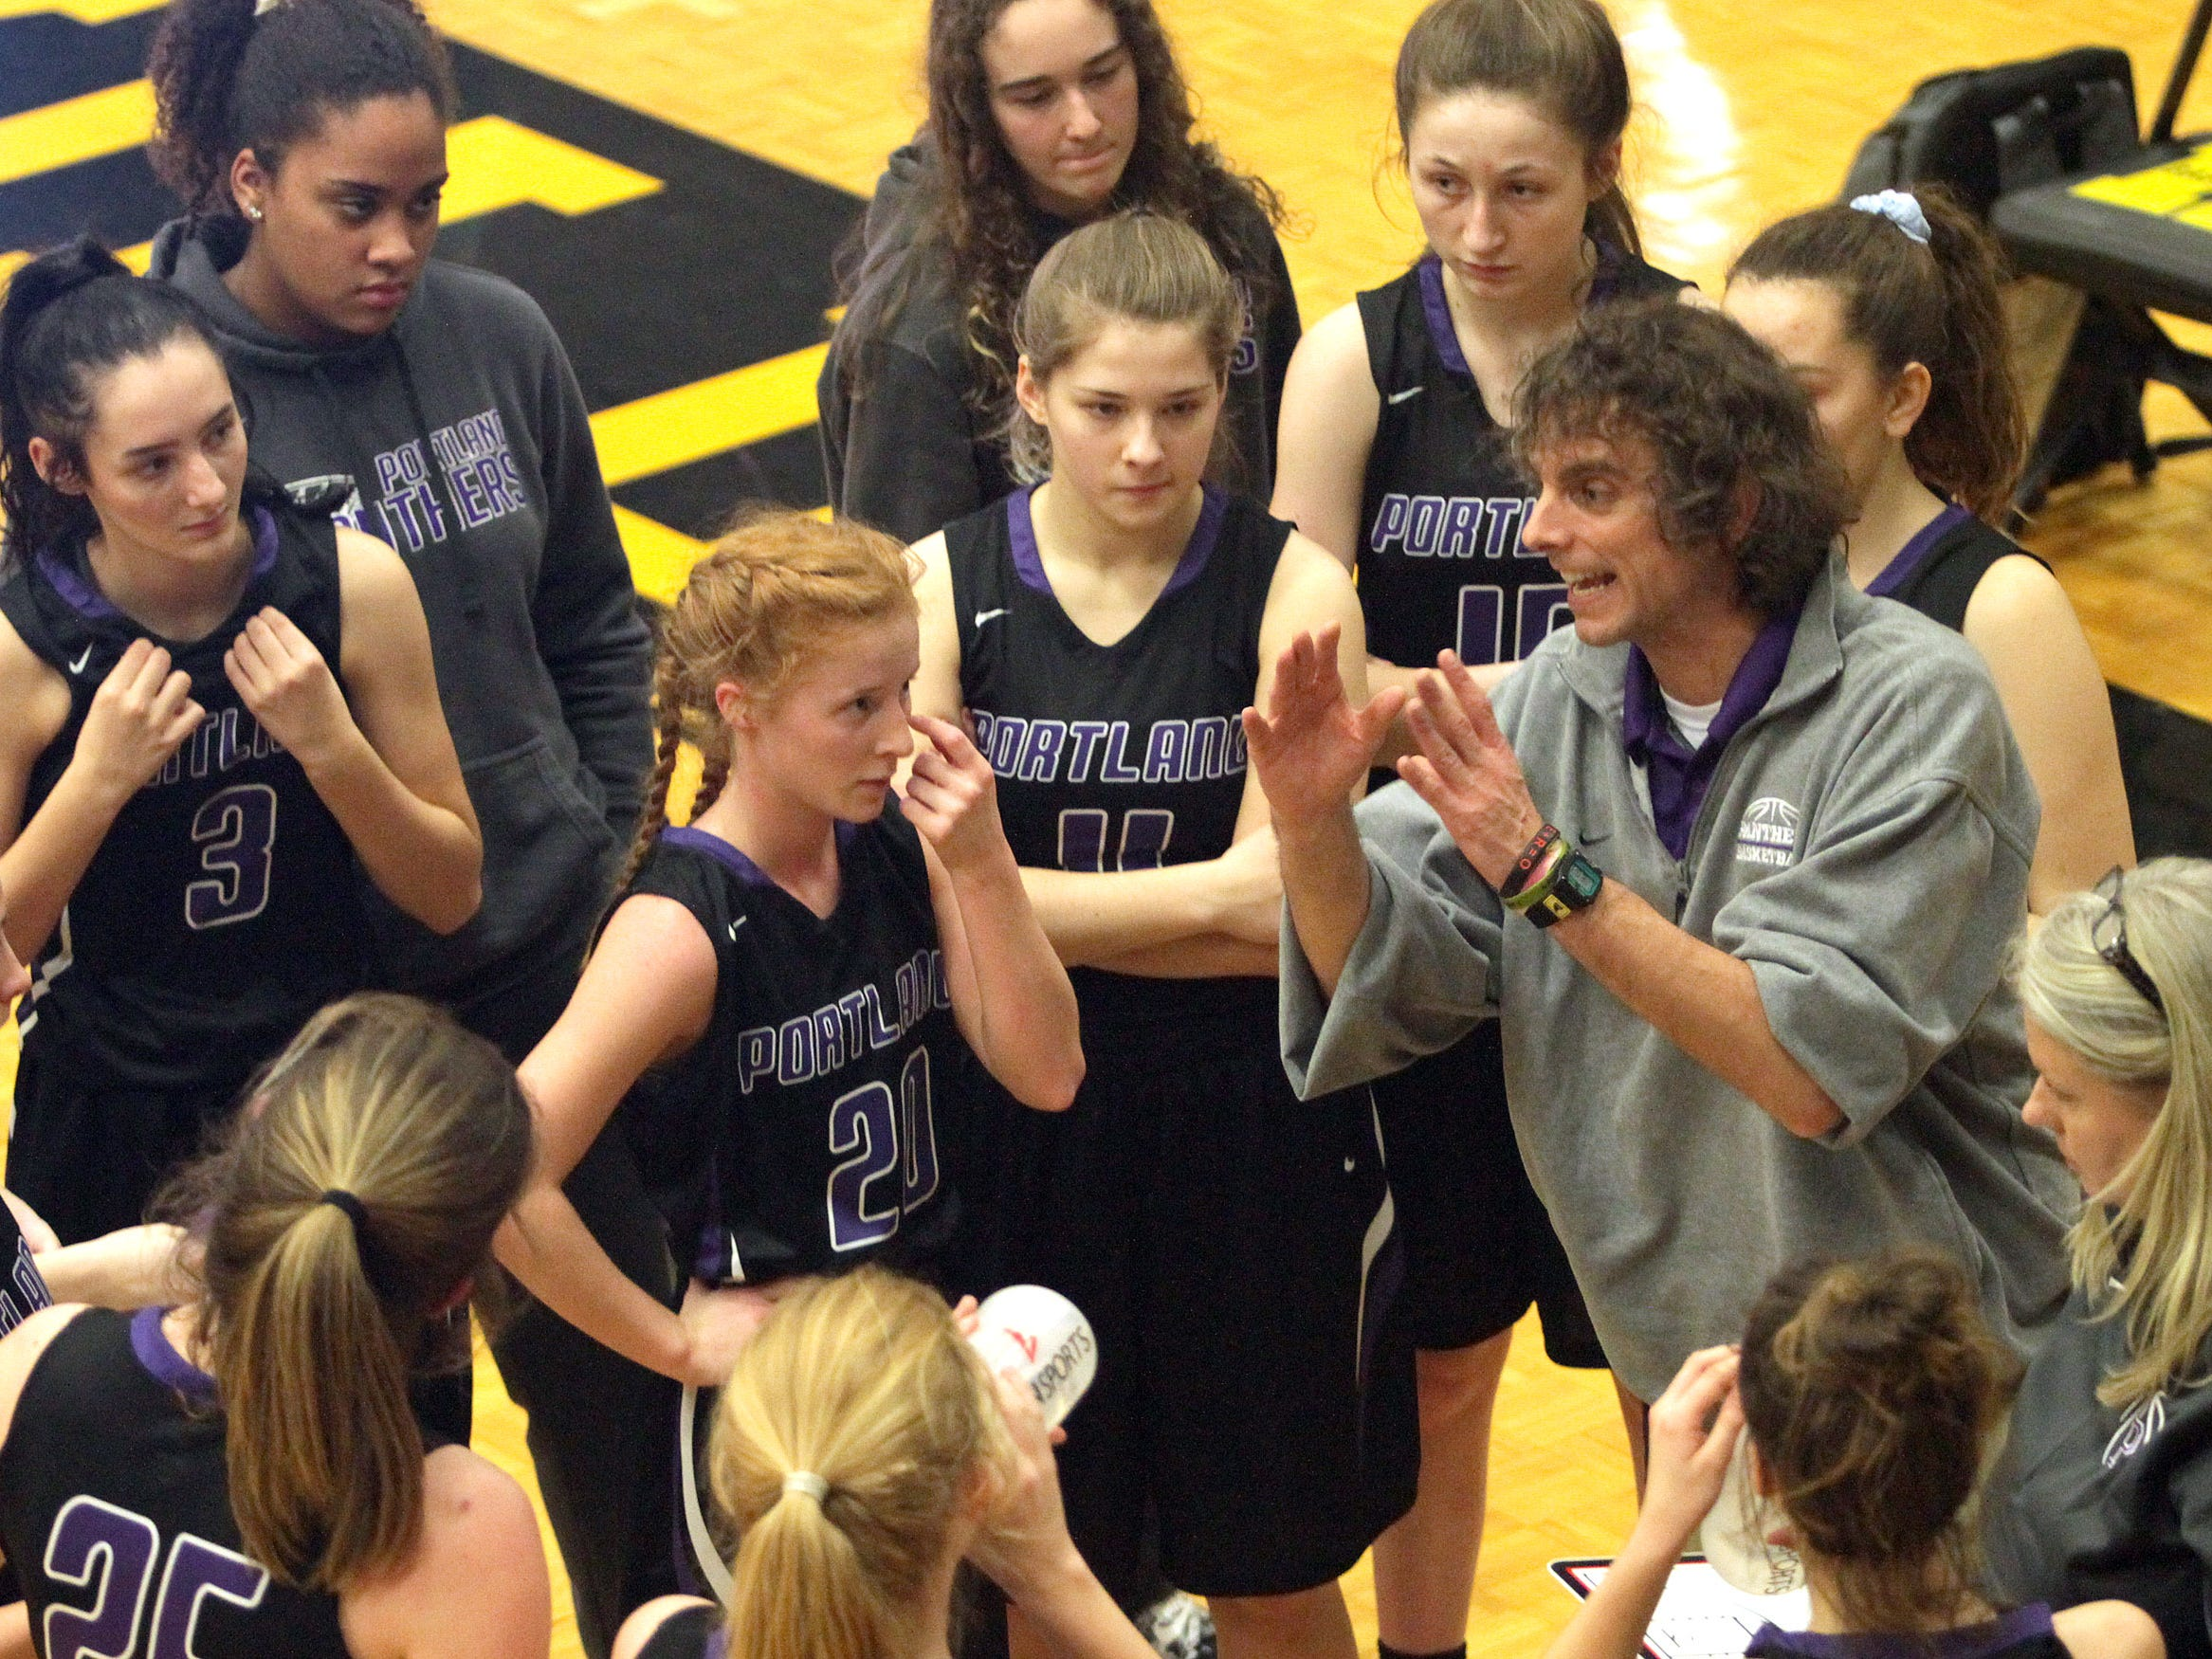 Portland coach Scott Steinbrcher talks with his team as they play Hendersonville on Friday, January 4, 2019.